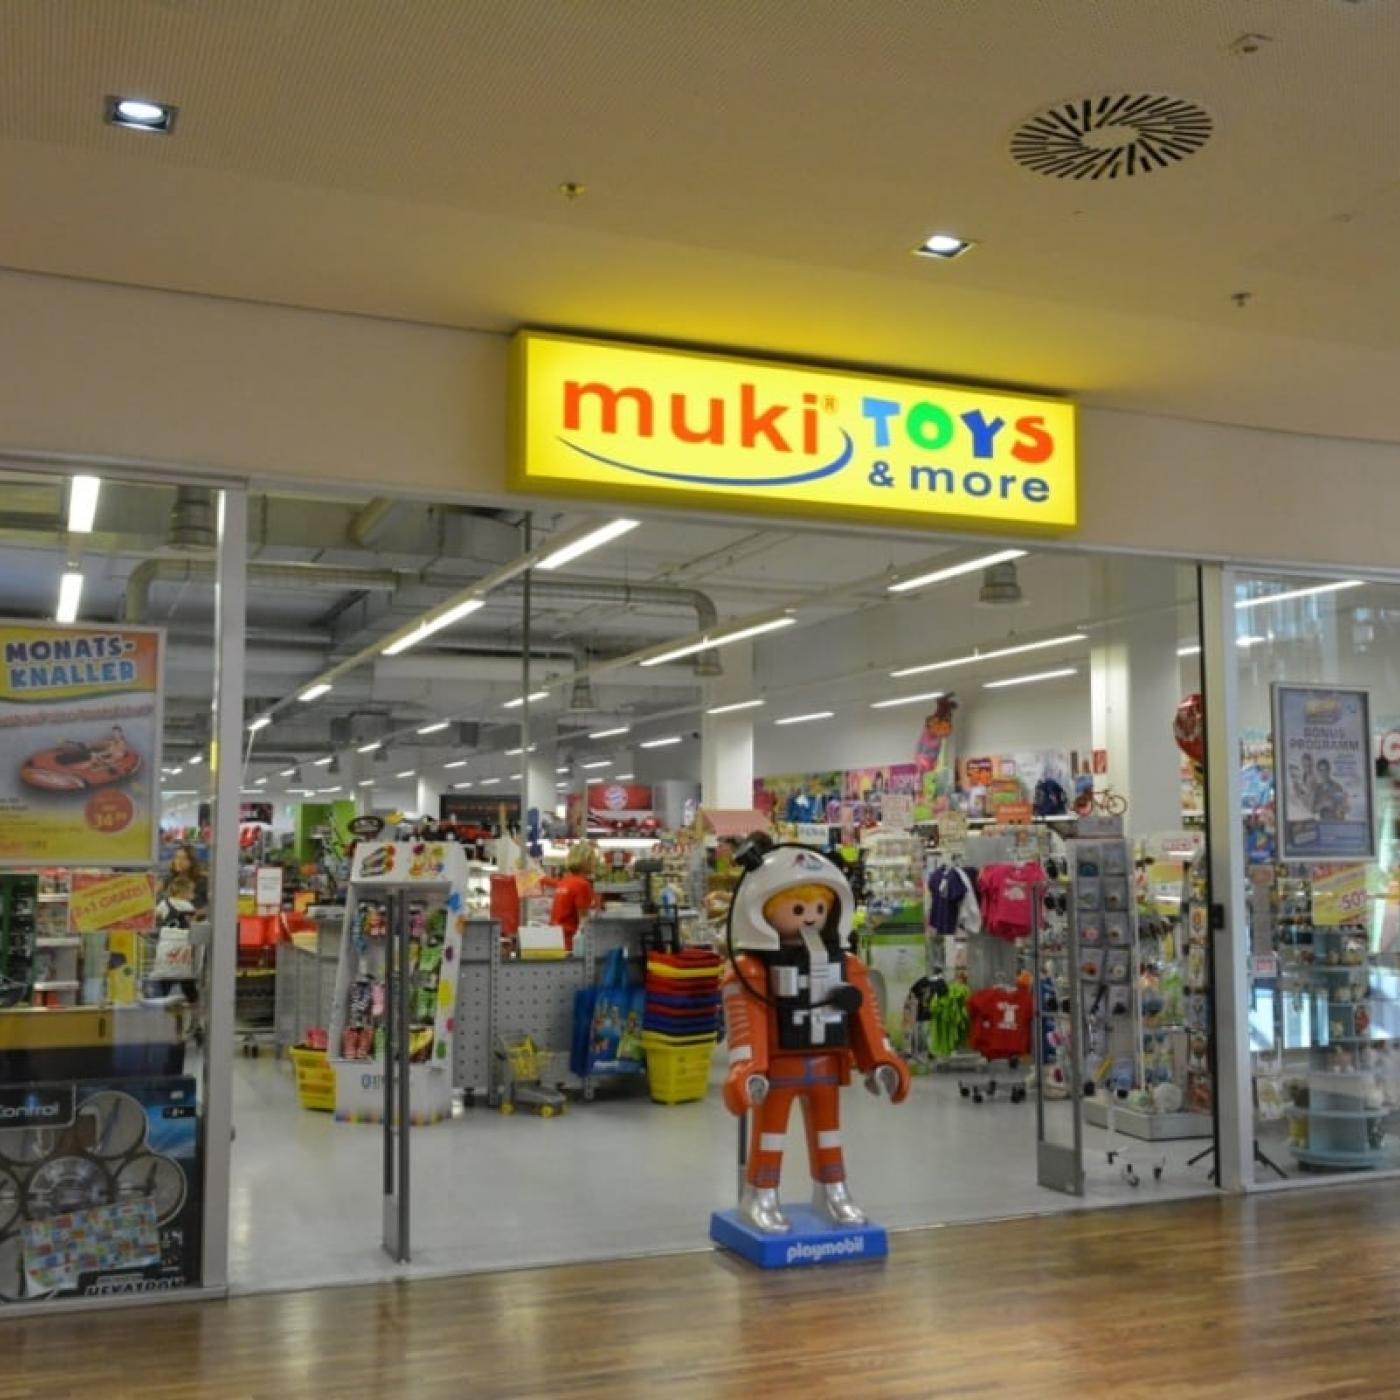 muki TOYS and more Filialle.